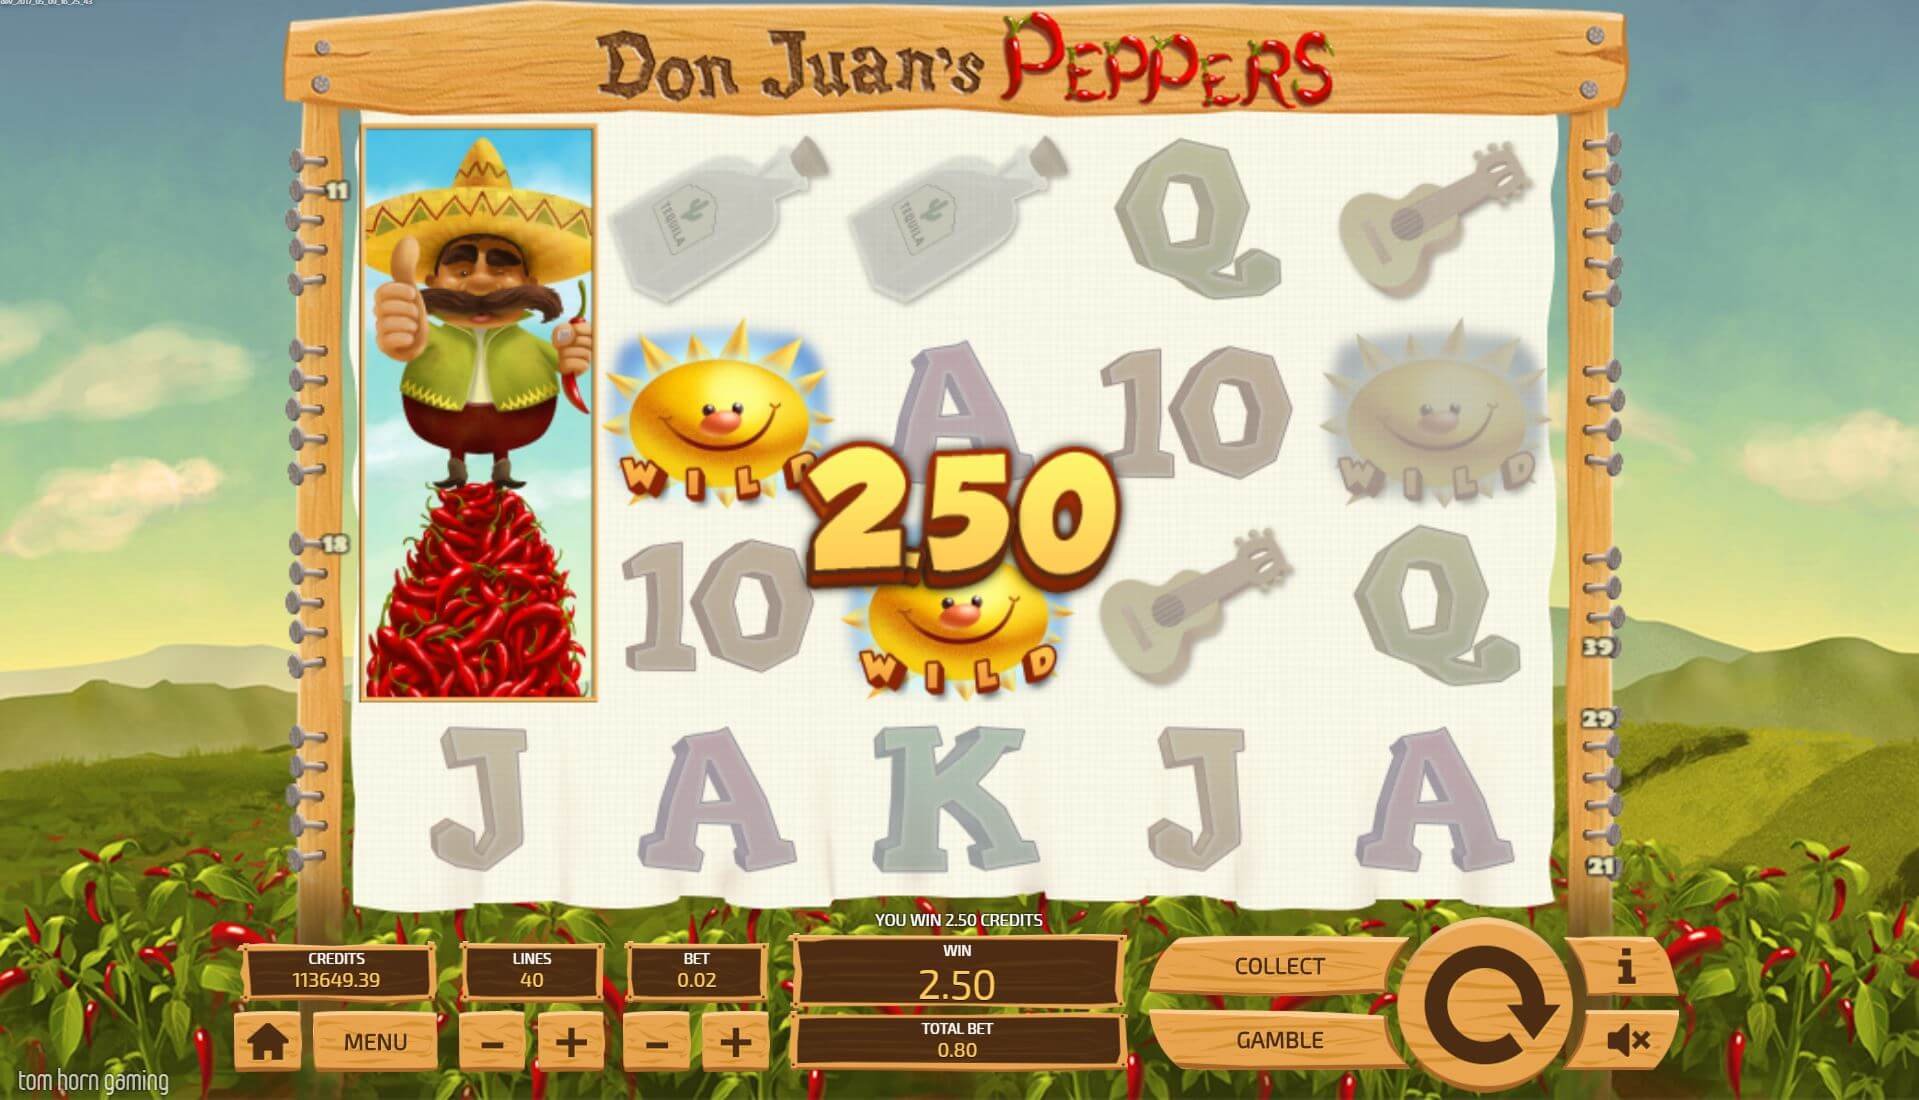 Don Juans Peppers Gameplay